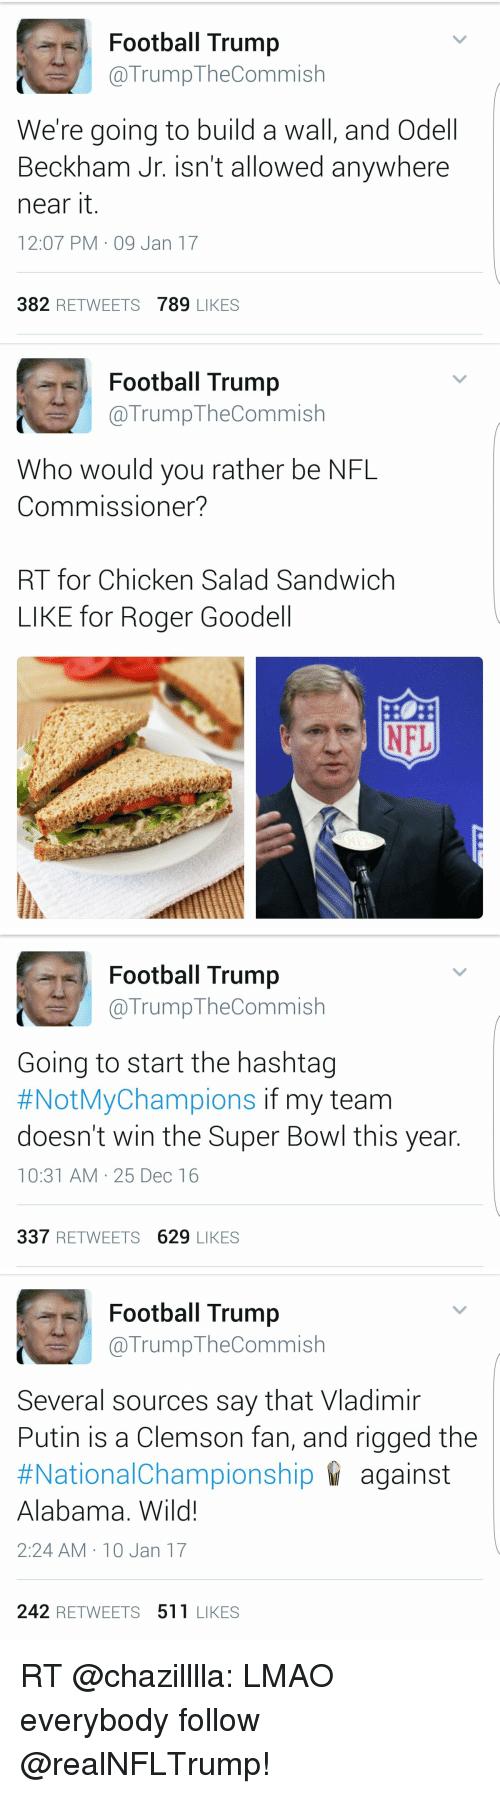 Nfl, Odell Beckham Jr., and Roger: Football Trump  TrumpTheCommish  We're going to build a wall, and Odell  Beckham Jr. isn't allowed anywhere  near it  12:07 PM 09 Jan 17  382  RETWEETS  789 LIKES   Football Trump  @Trump The Commish  Who would you rather be NFL  Commissioner?  RT for Chicken Salad Sandwich  LIKE for Roger Goodell   Football Trump  @Trump Commish  Going to start the hashtag  #NotMyChampions if my team  doesn't win the Super Bowl this year  10:31 AM 25 Dec 16  337  RETWEETS 629  LIKES   Football Trump  (a Trump TheCommish  Several sources say that Vladimir  Putin is a Clemson fan, and rigged the  #National Championship against  Alabama. Wild!  2:24 AM 10 Jan 17  242 RETWEETS 511 LIKES RT @chazilllla: LMAO everybody follow @realNFLTrump!